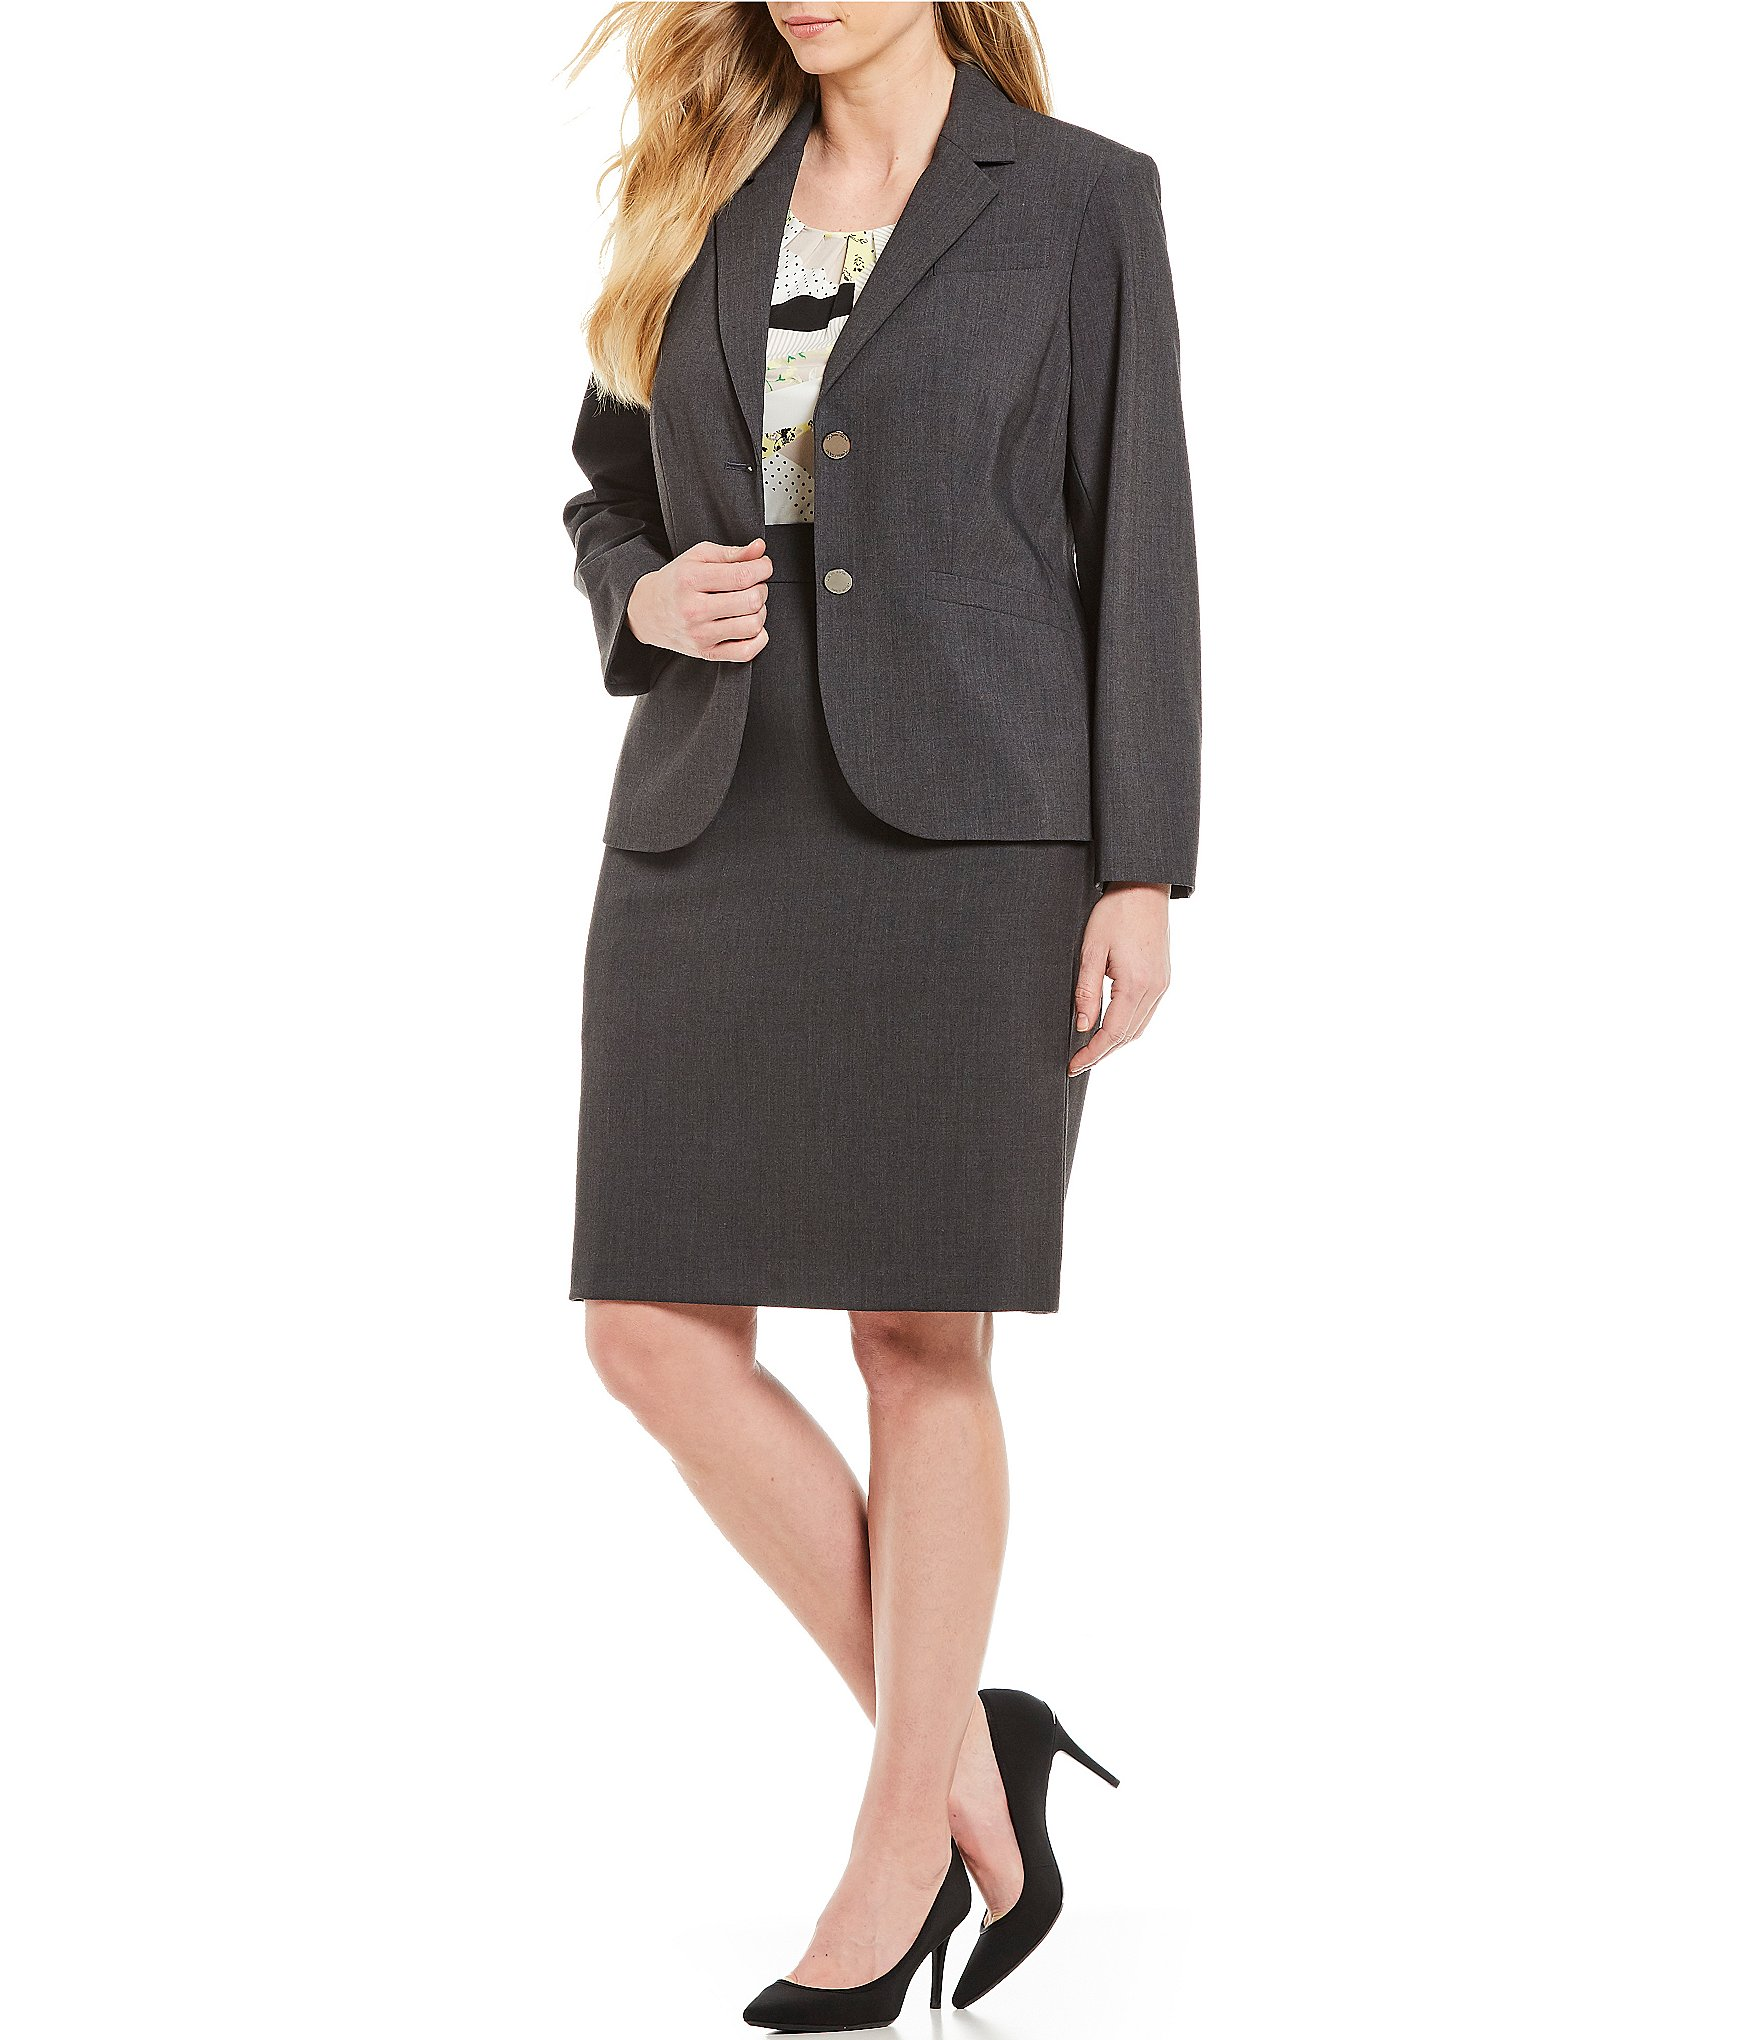 Women Skirt And Jacket Suit Women S Clothing Apparel Dillard S